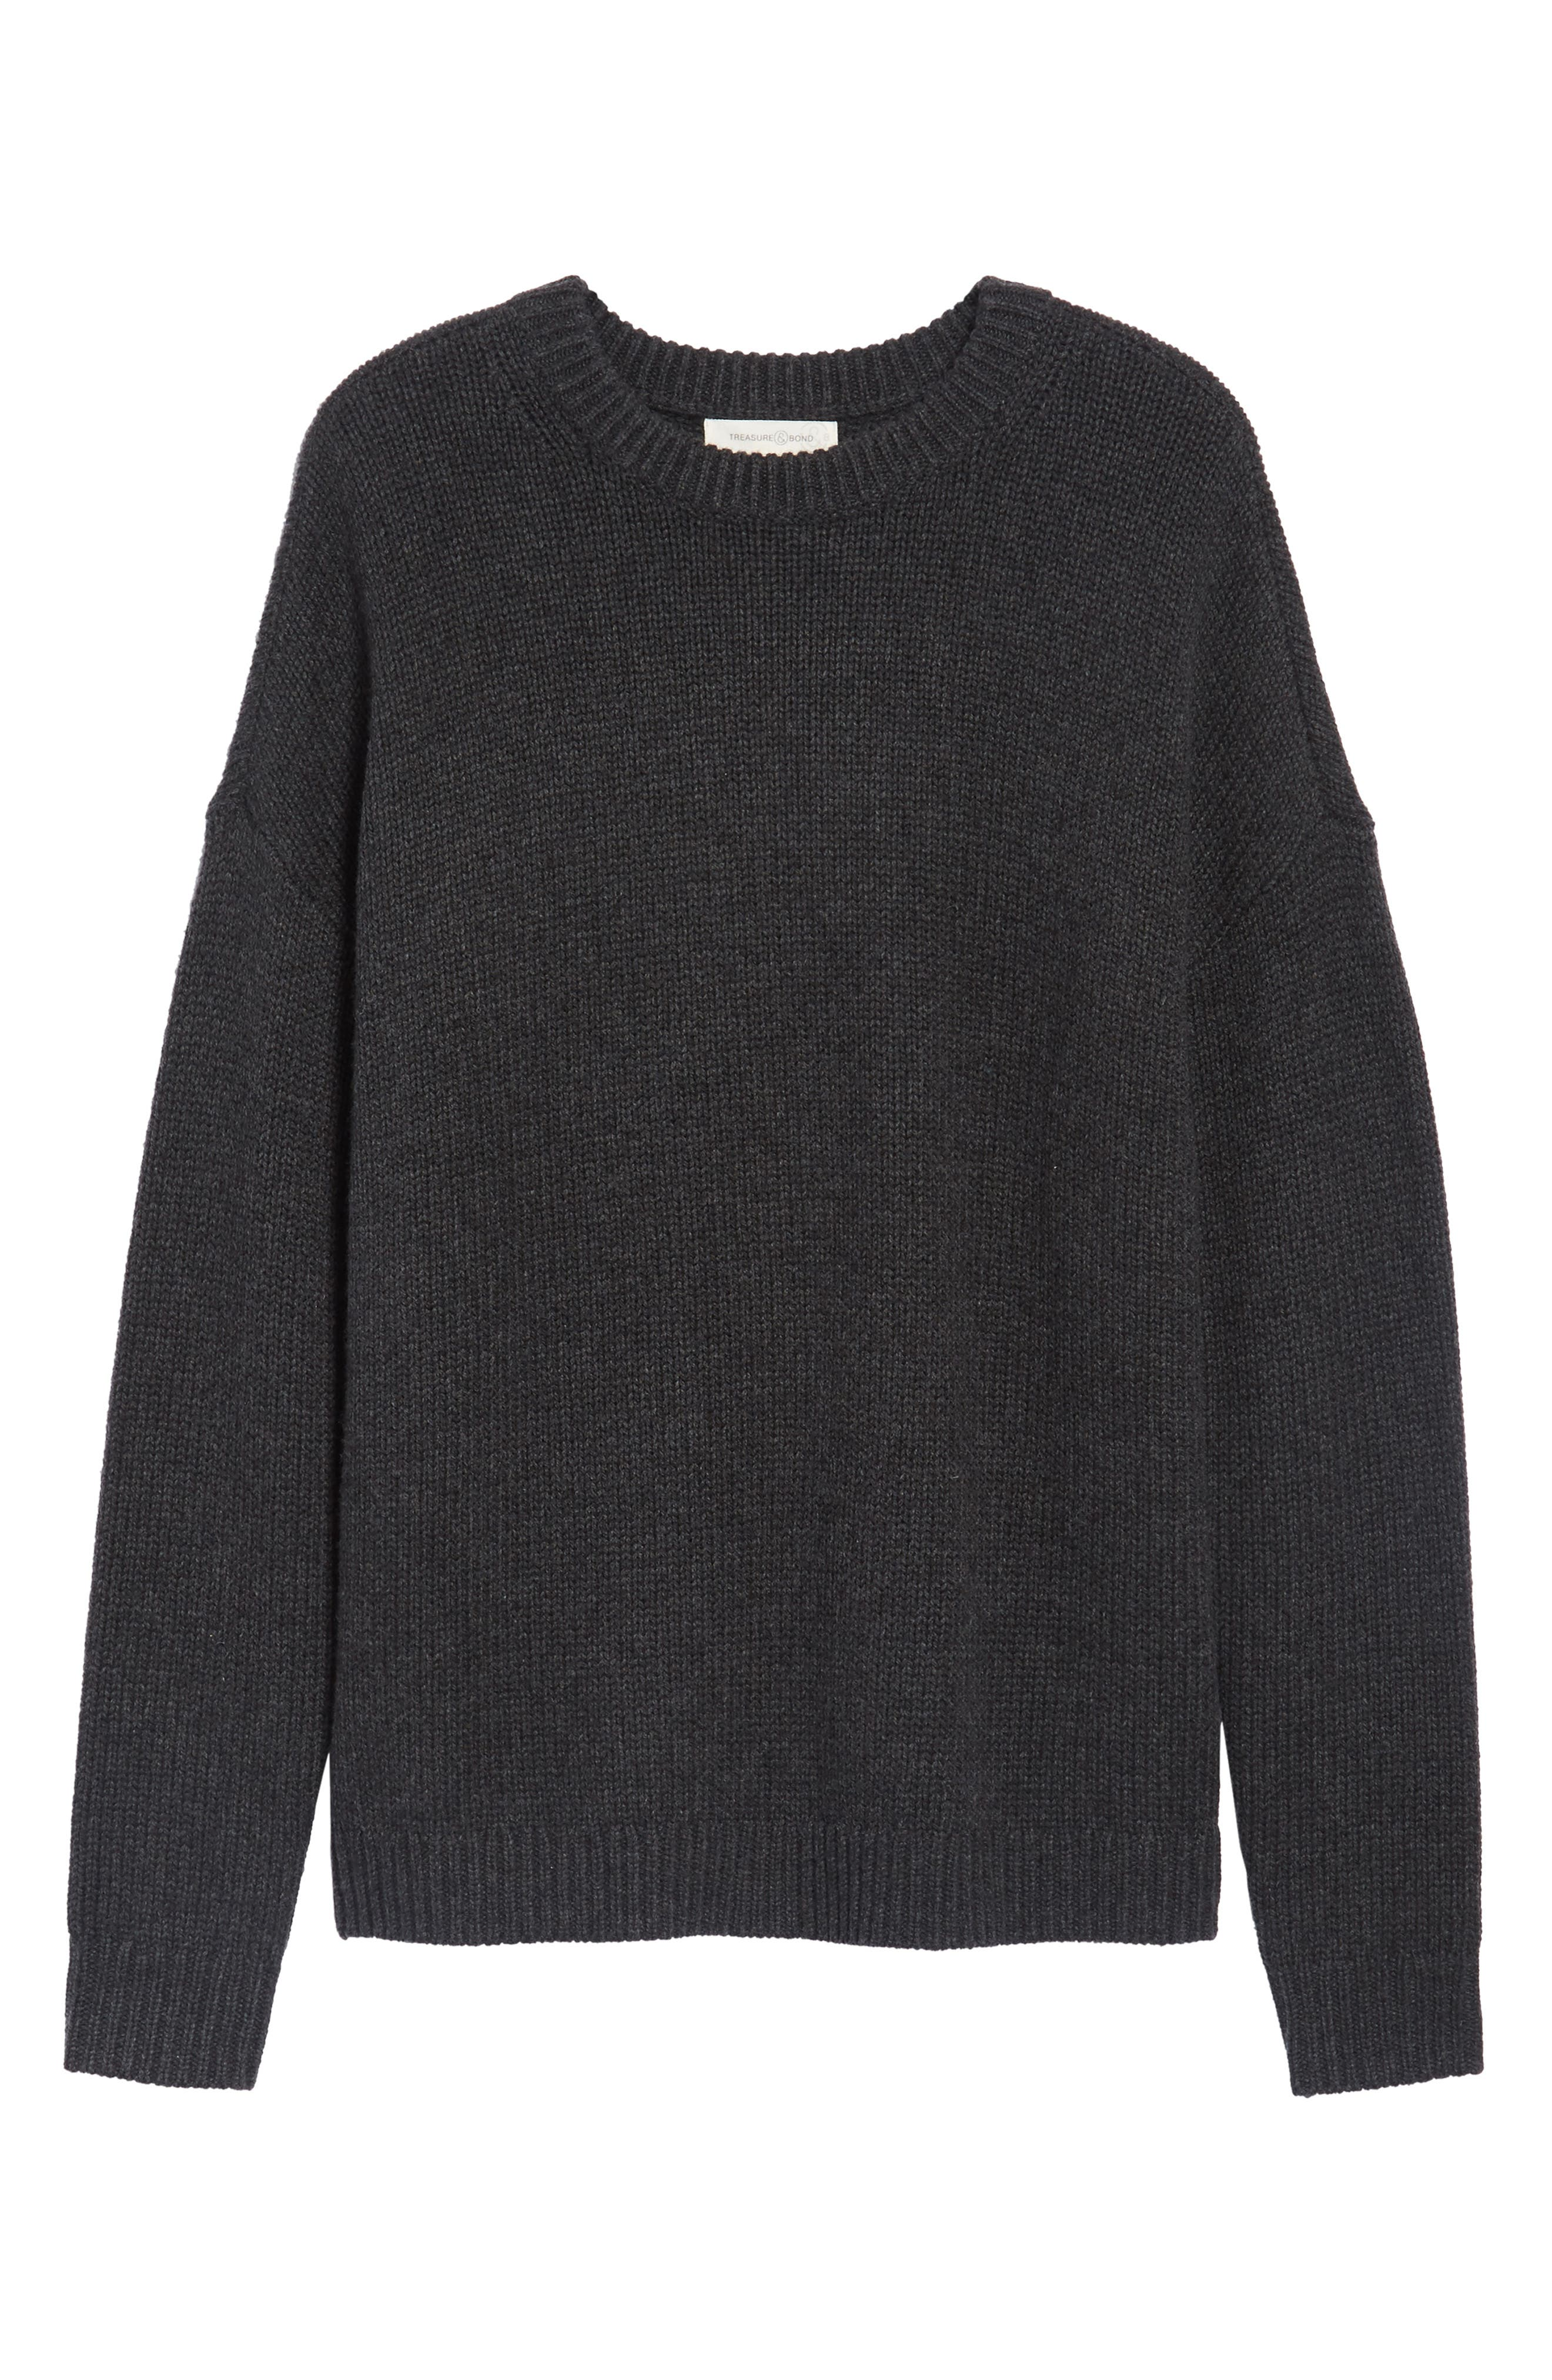 x Something Navy Crewneck Sweater,                             Alternate thumbnail 31, color,